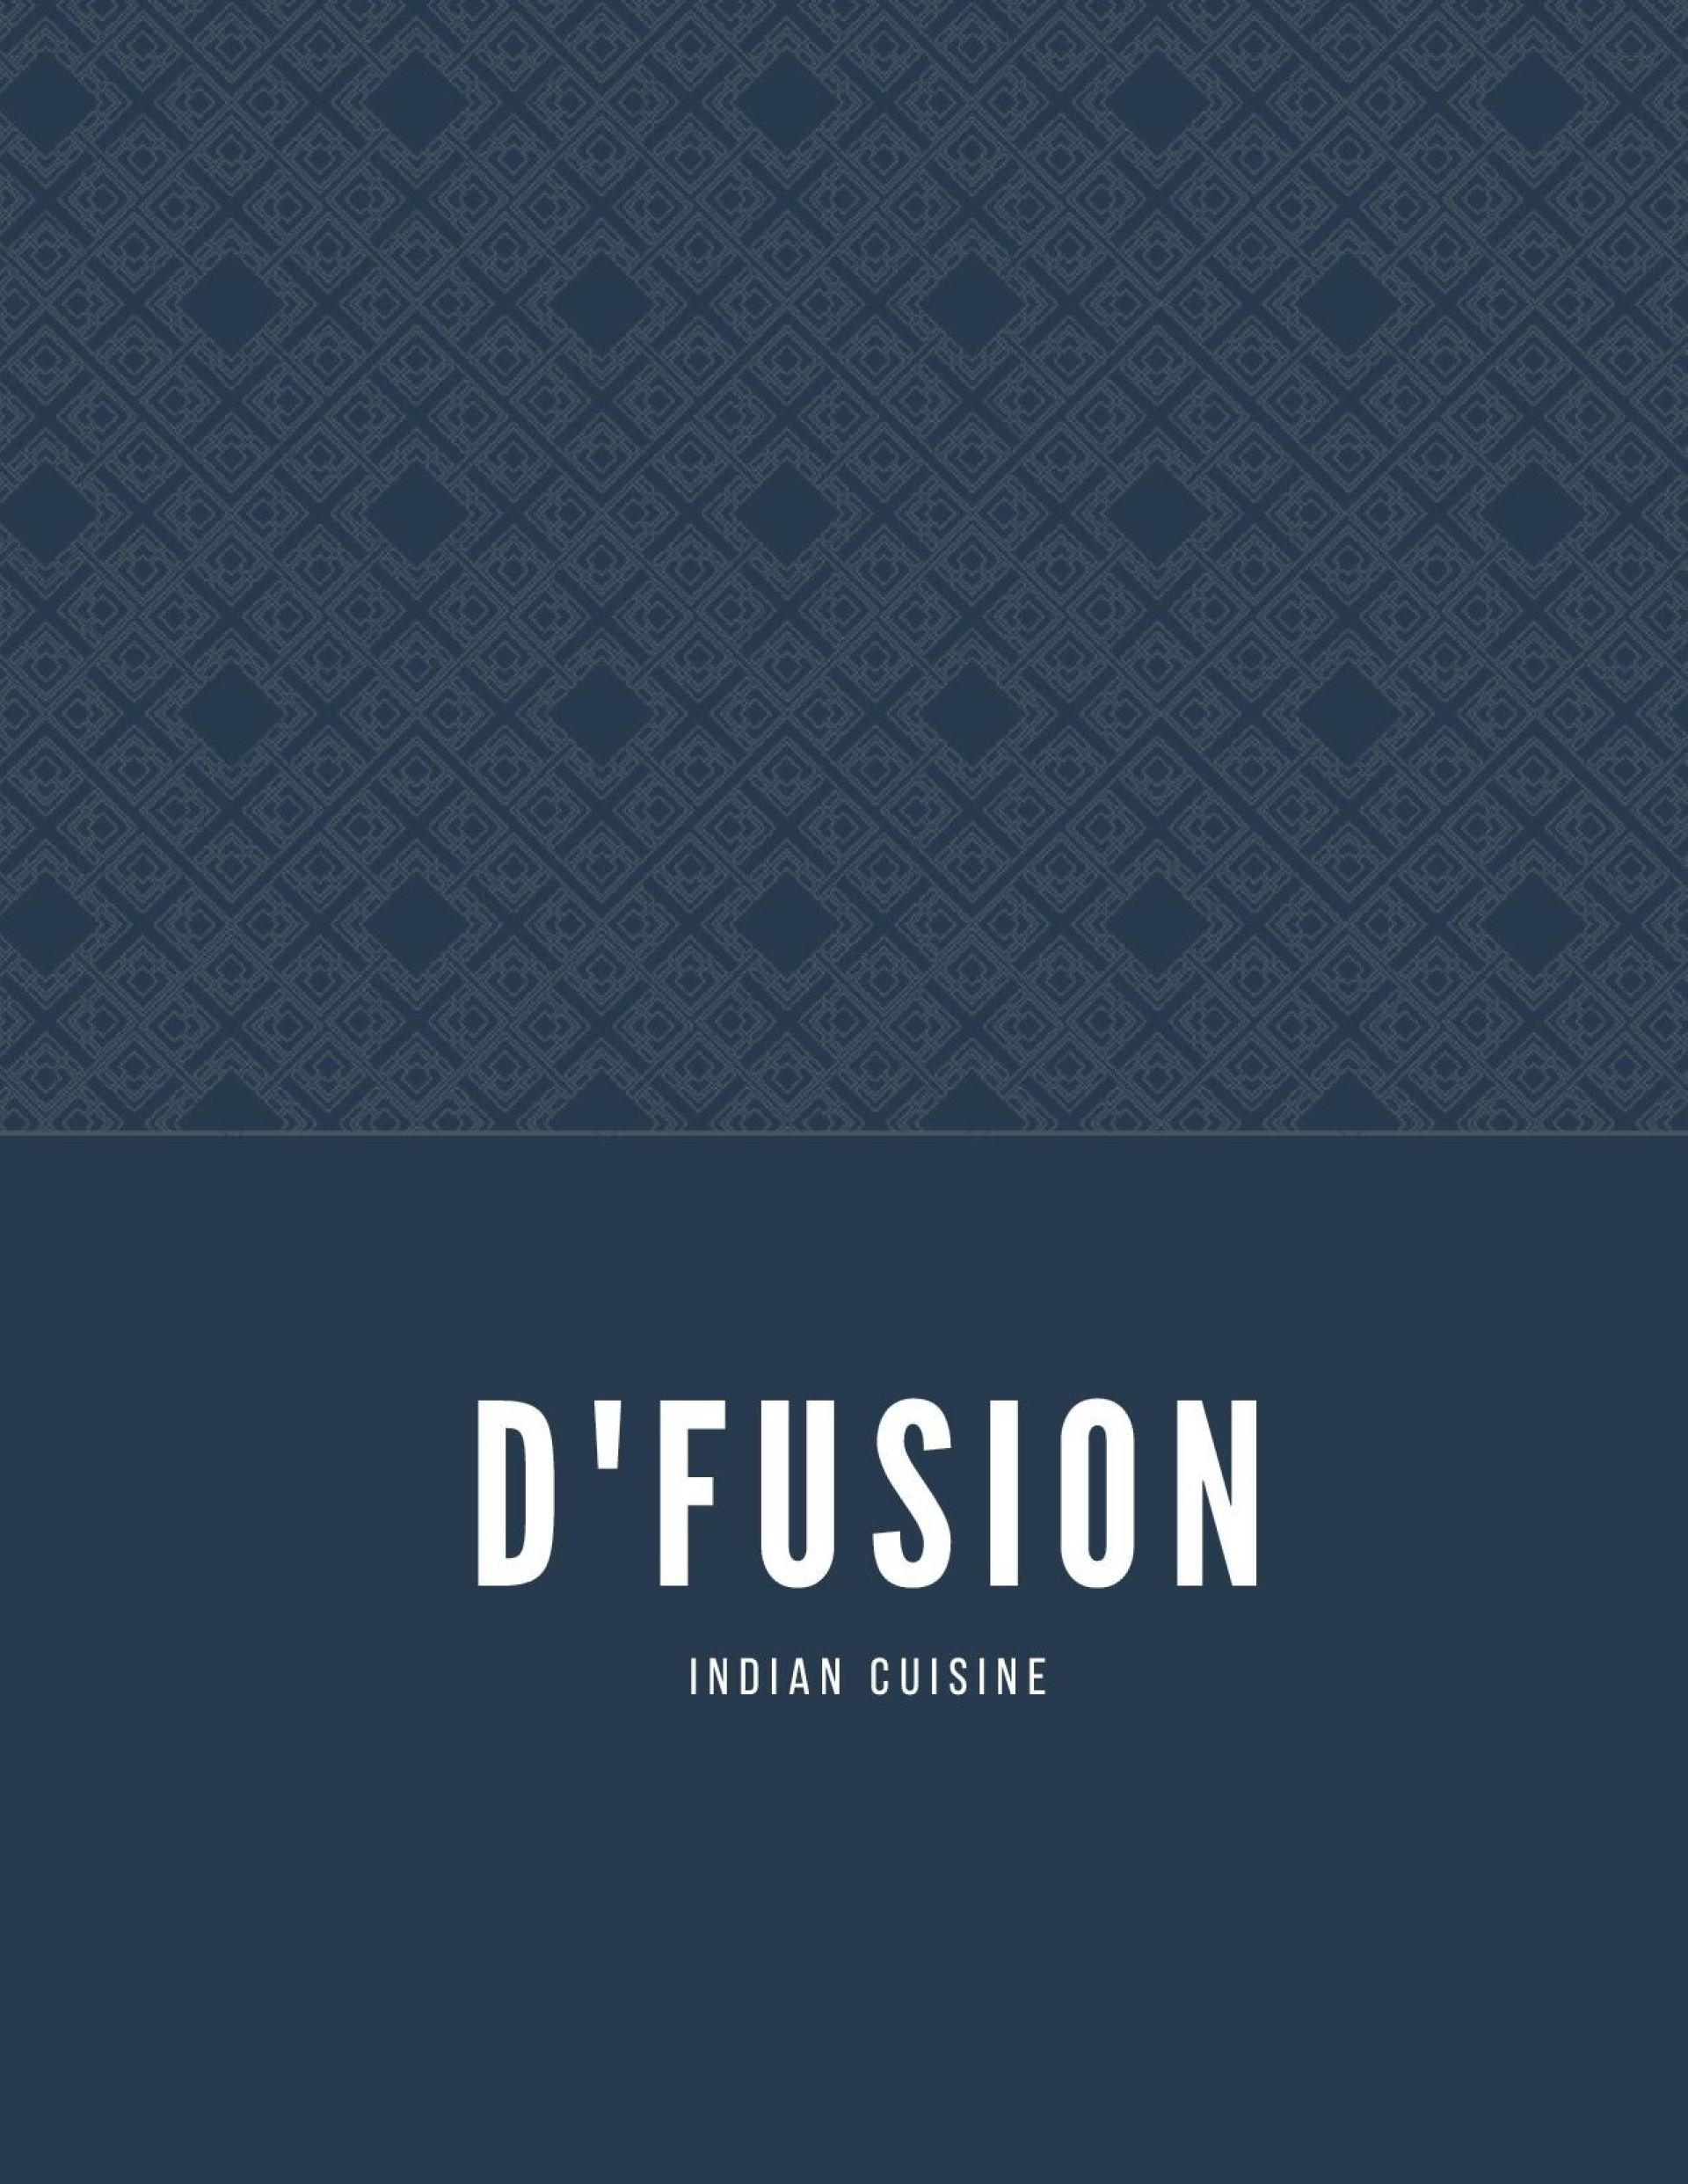 Menu of the d'fusion